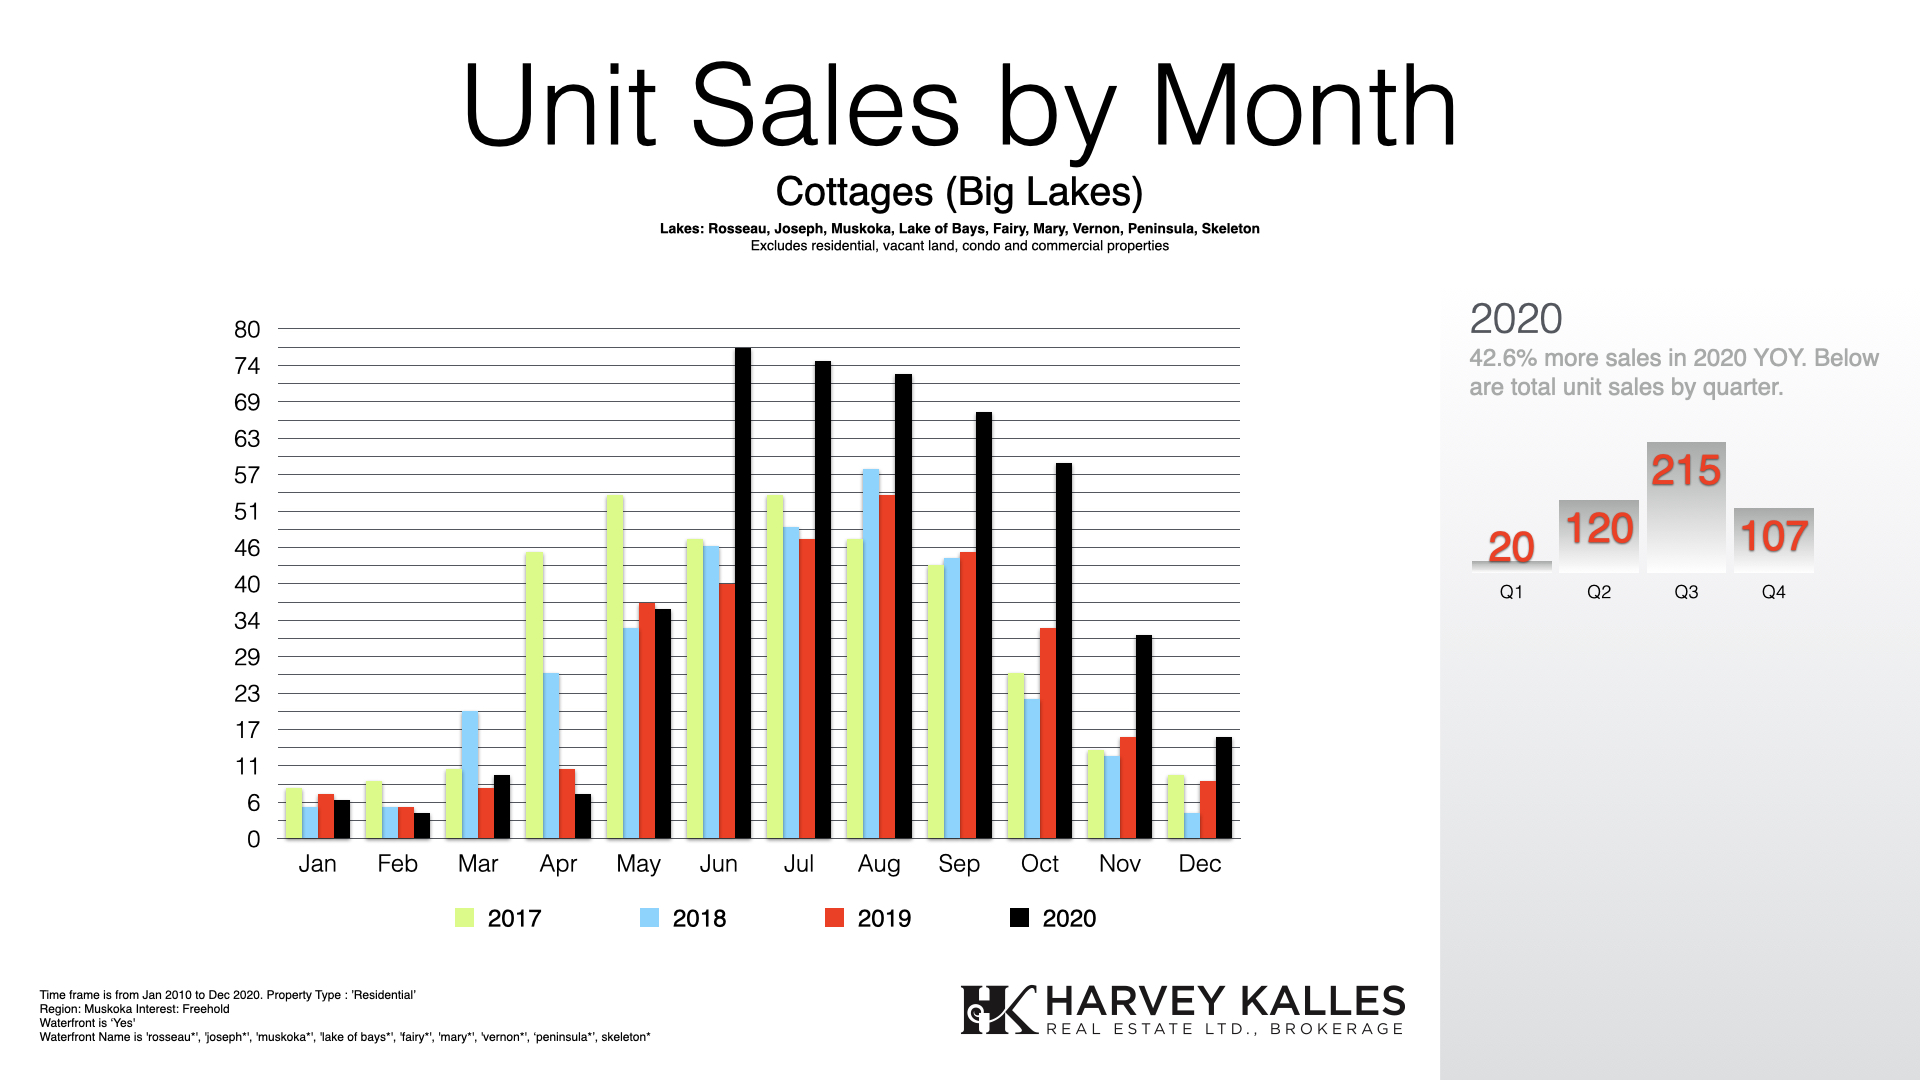 muskoka-big-lakes-cottage-real-estate-sales-by-month